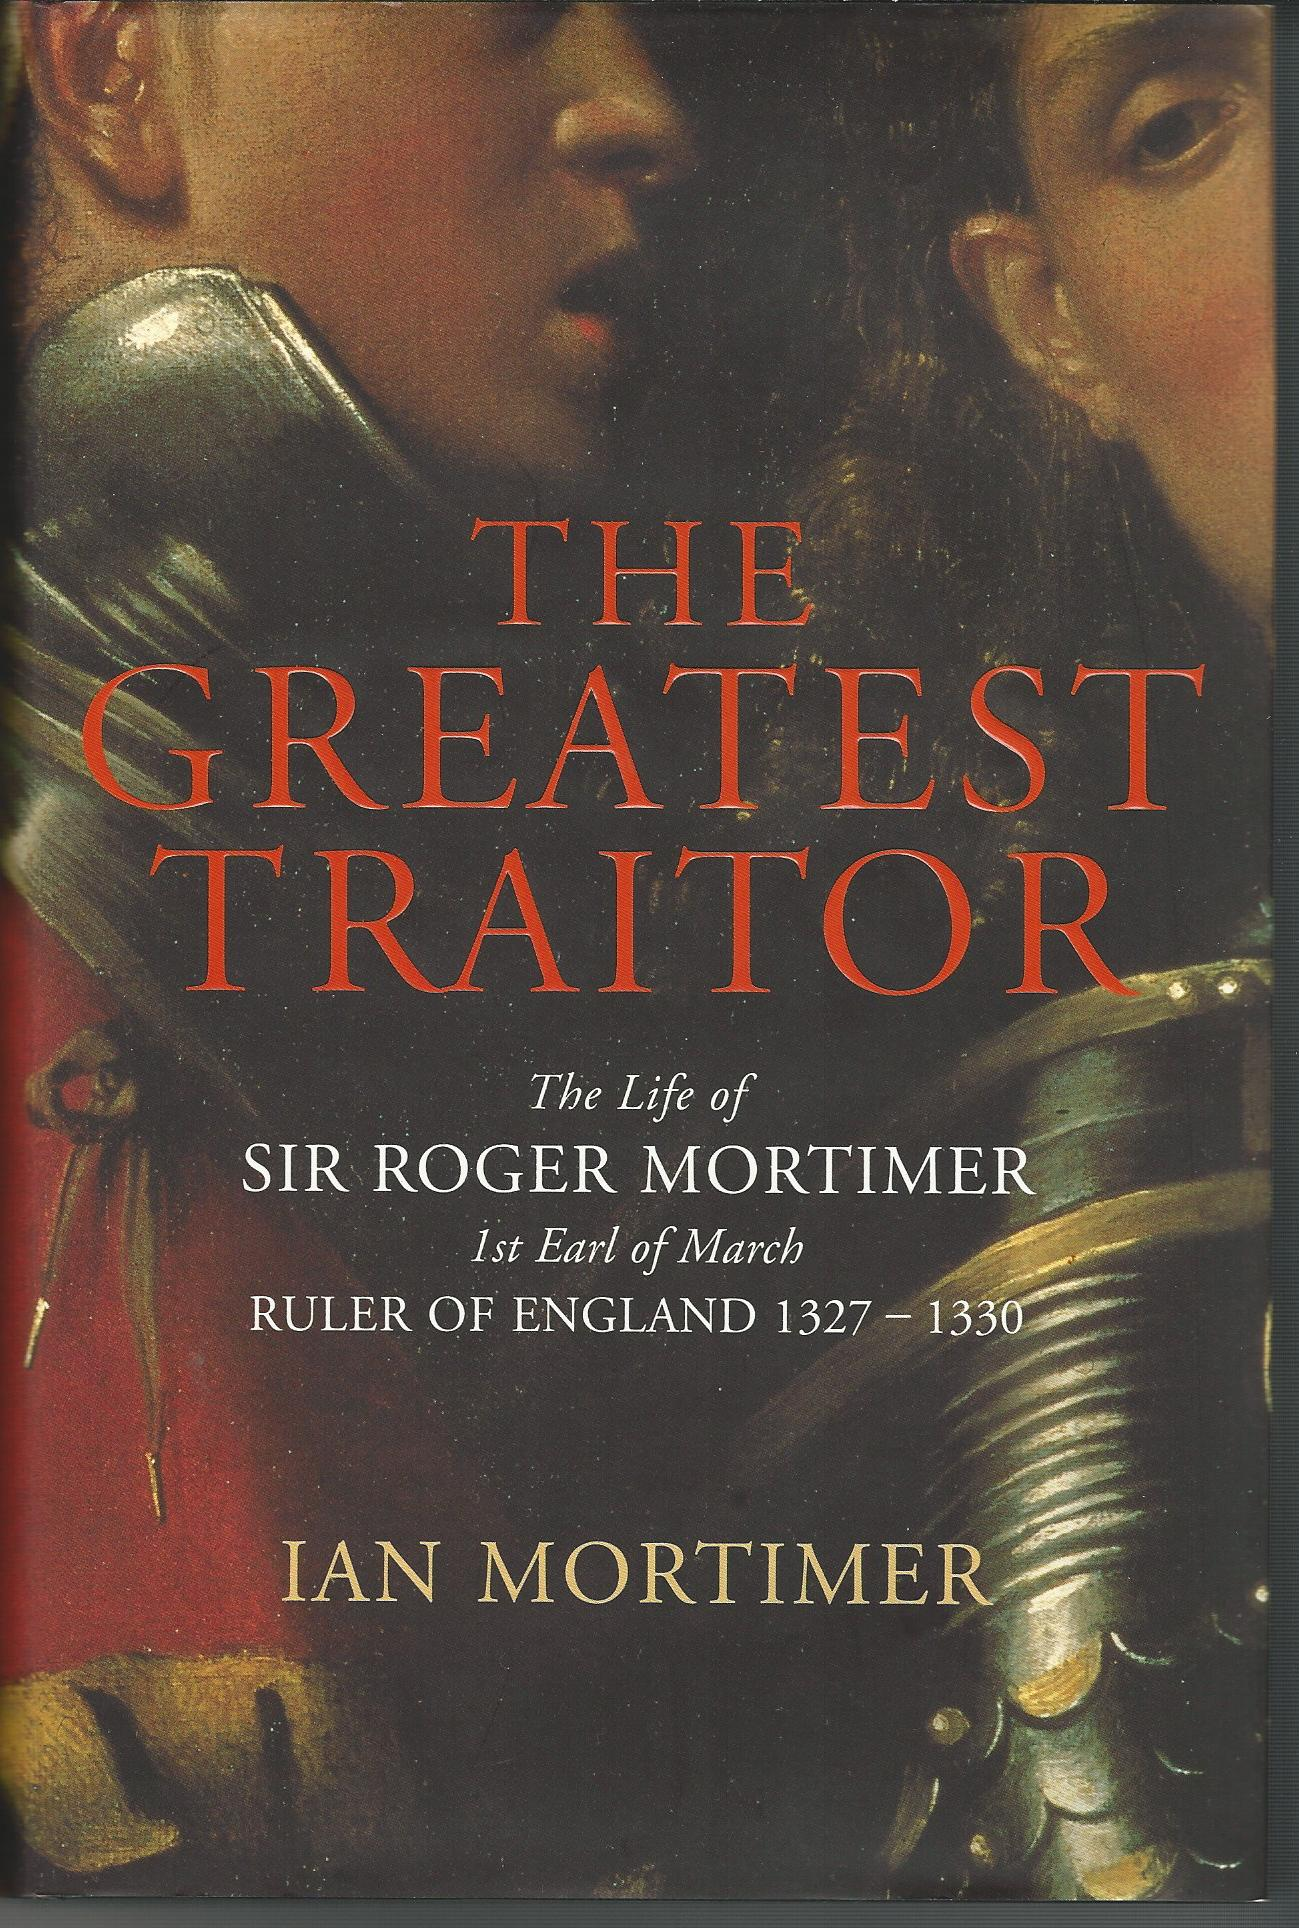 Image for The Greatest Traitor: The Life of Sir Roger Mortimer, Ruler of England 1327-1330